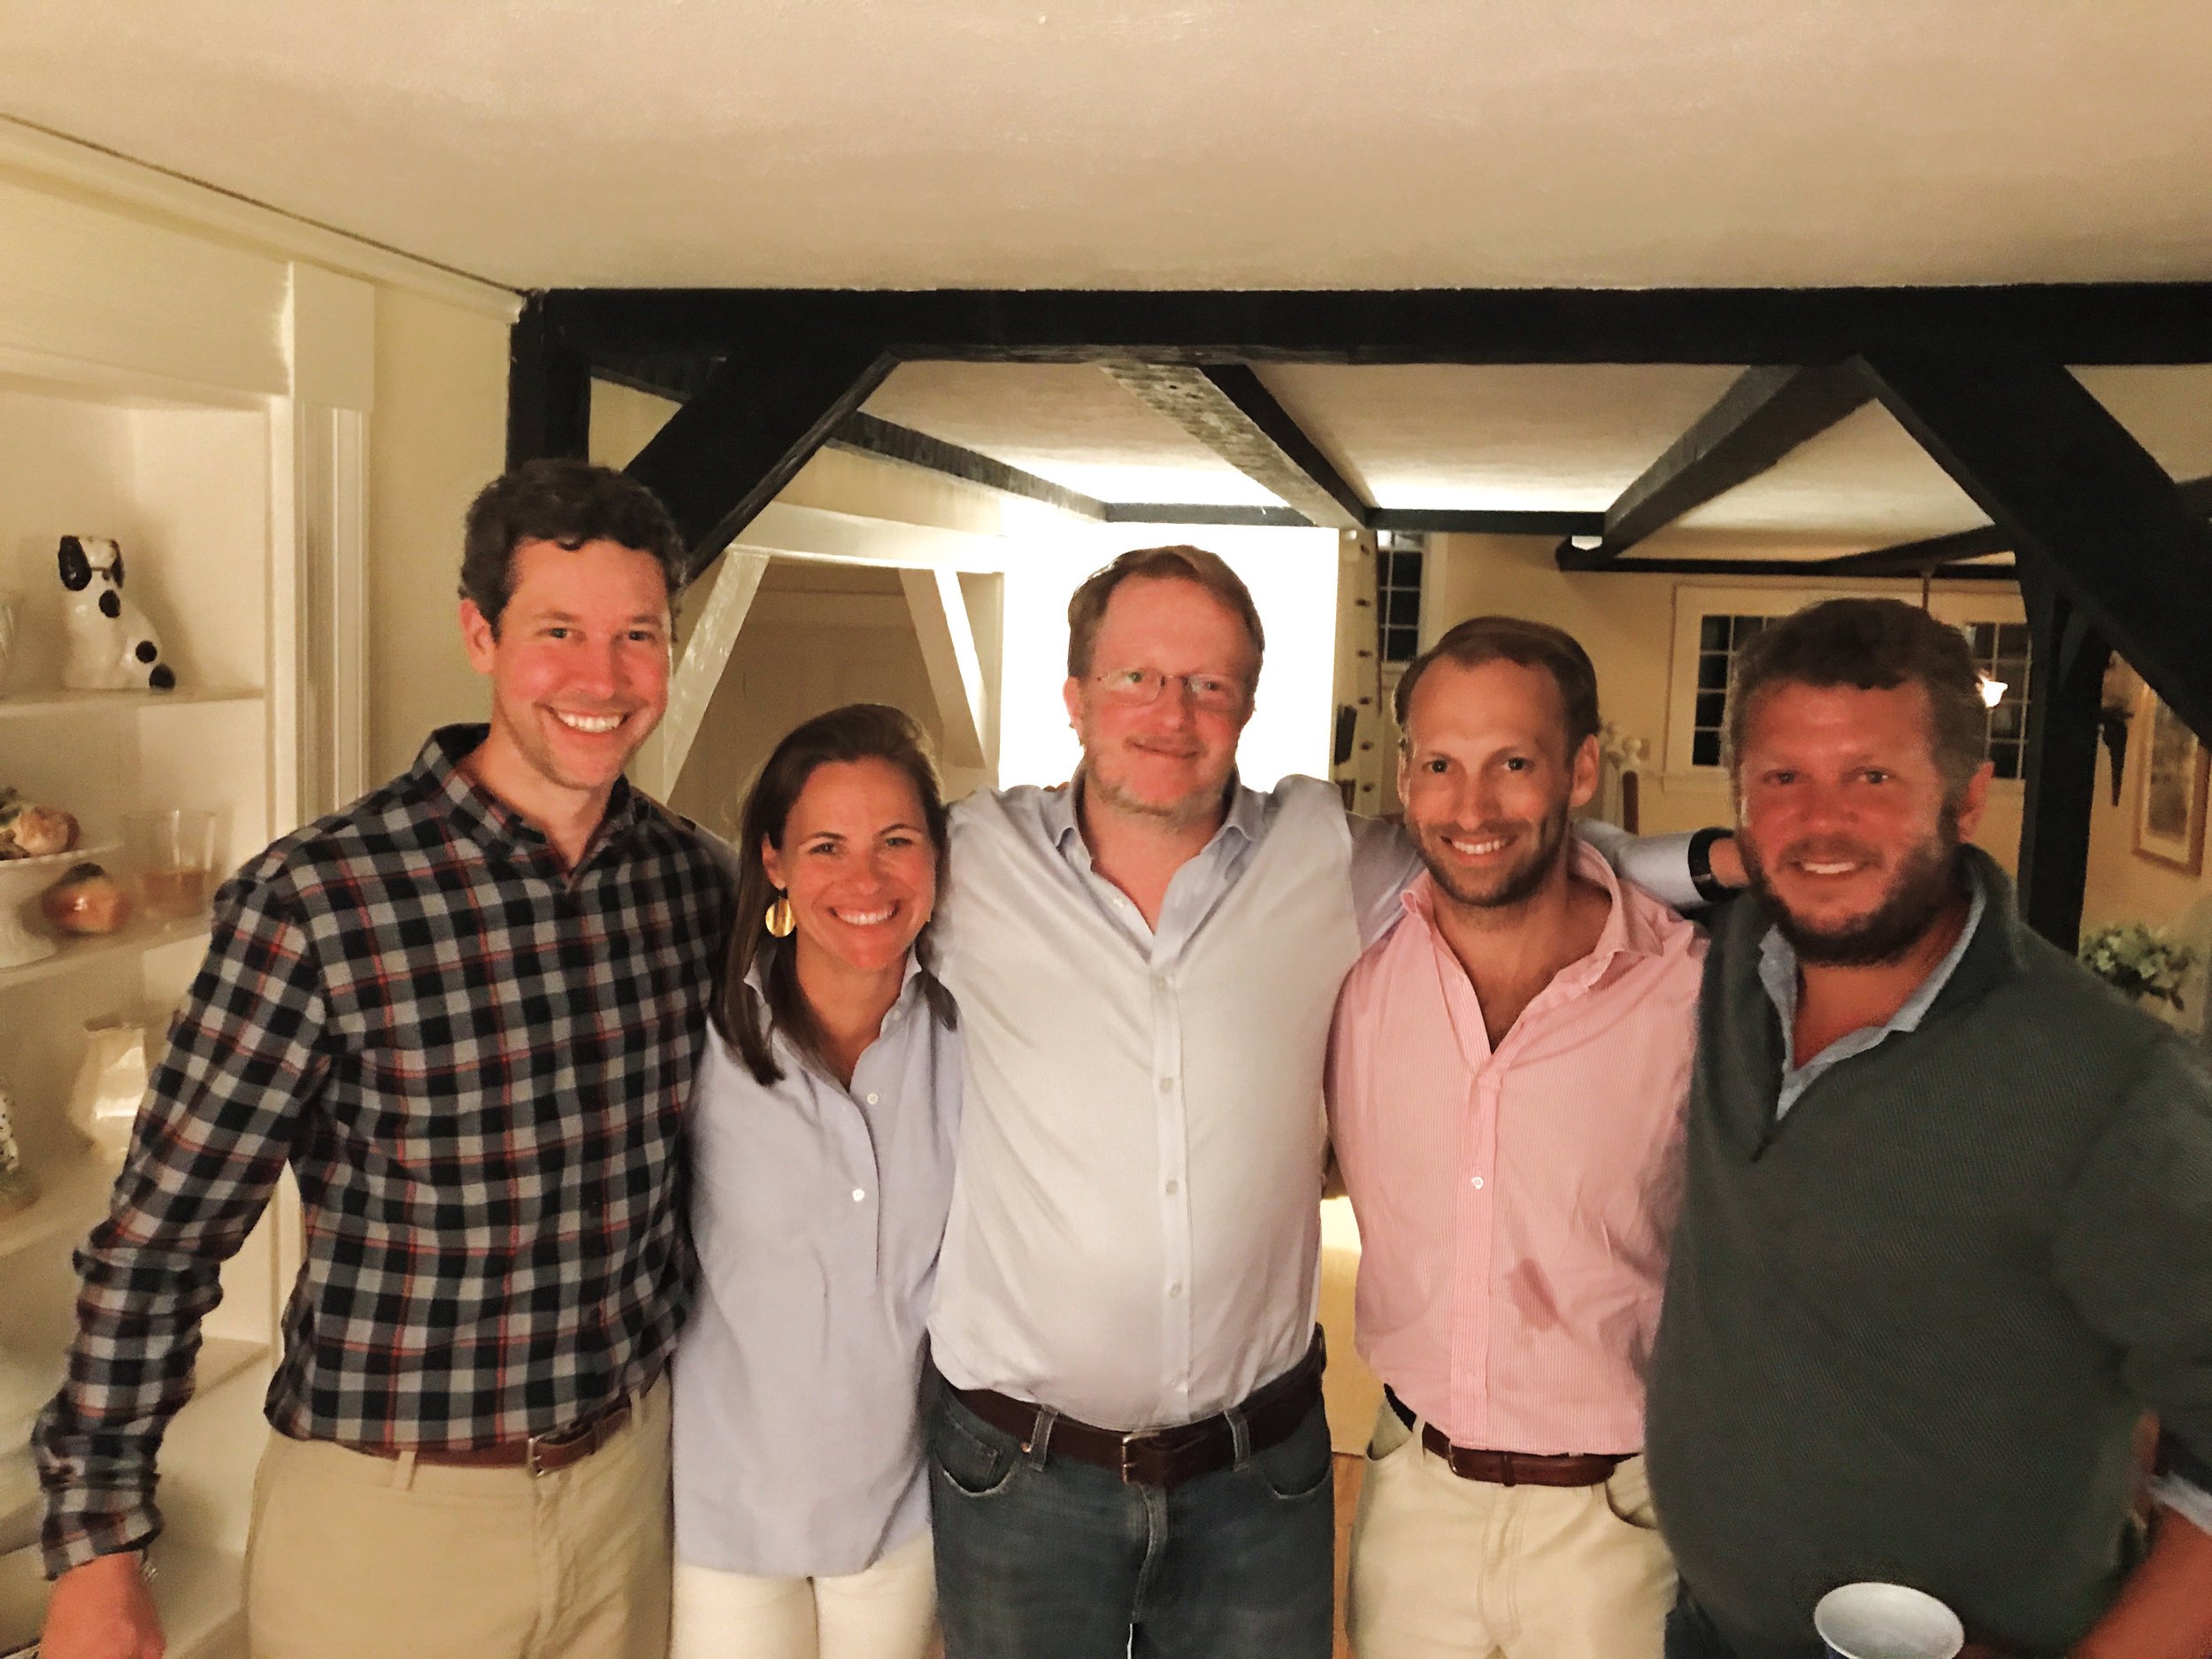 Paulies (l. to r.) Taylor Schreiber '98, Suzette Oates '00, Chris Allen '87, Nick Oates '03, and Josiah Hornblower '94 enjoyed their gathering in Dark Harbor, Maine.